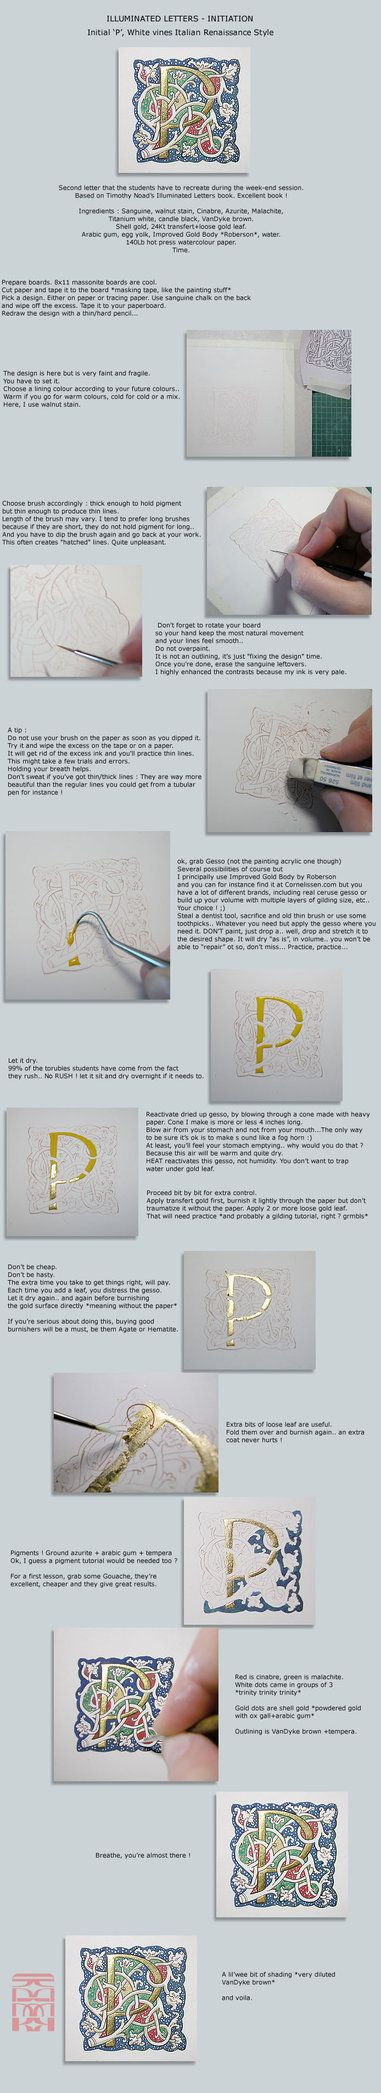 How to create an illuminated letter, step by step. Really nice instructions.